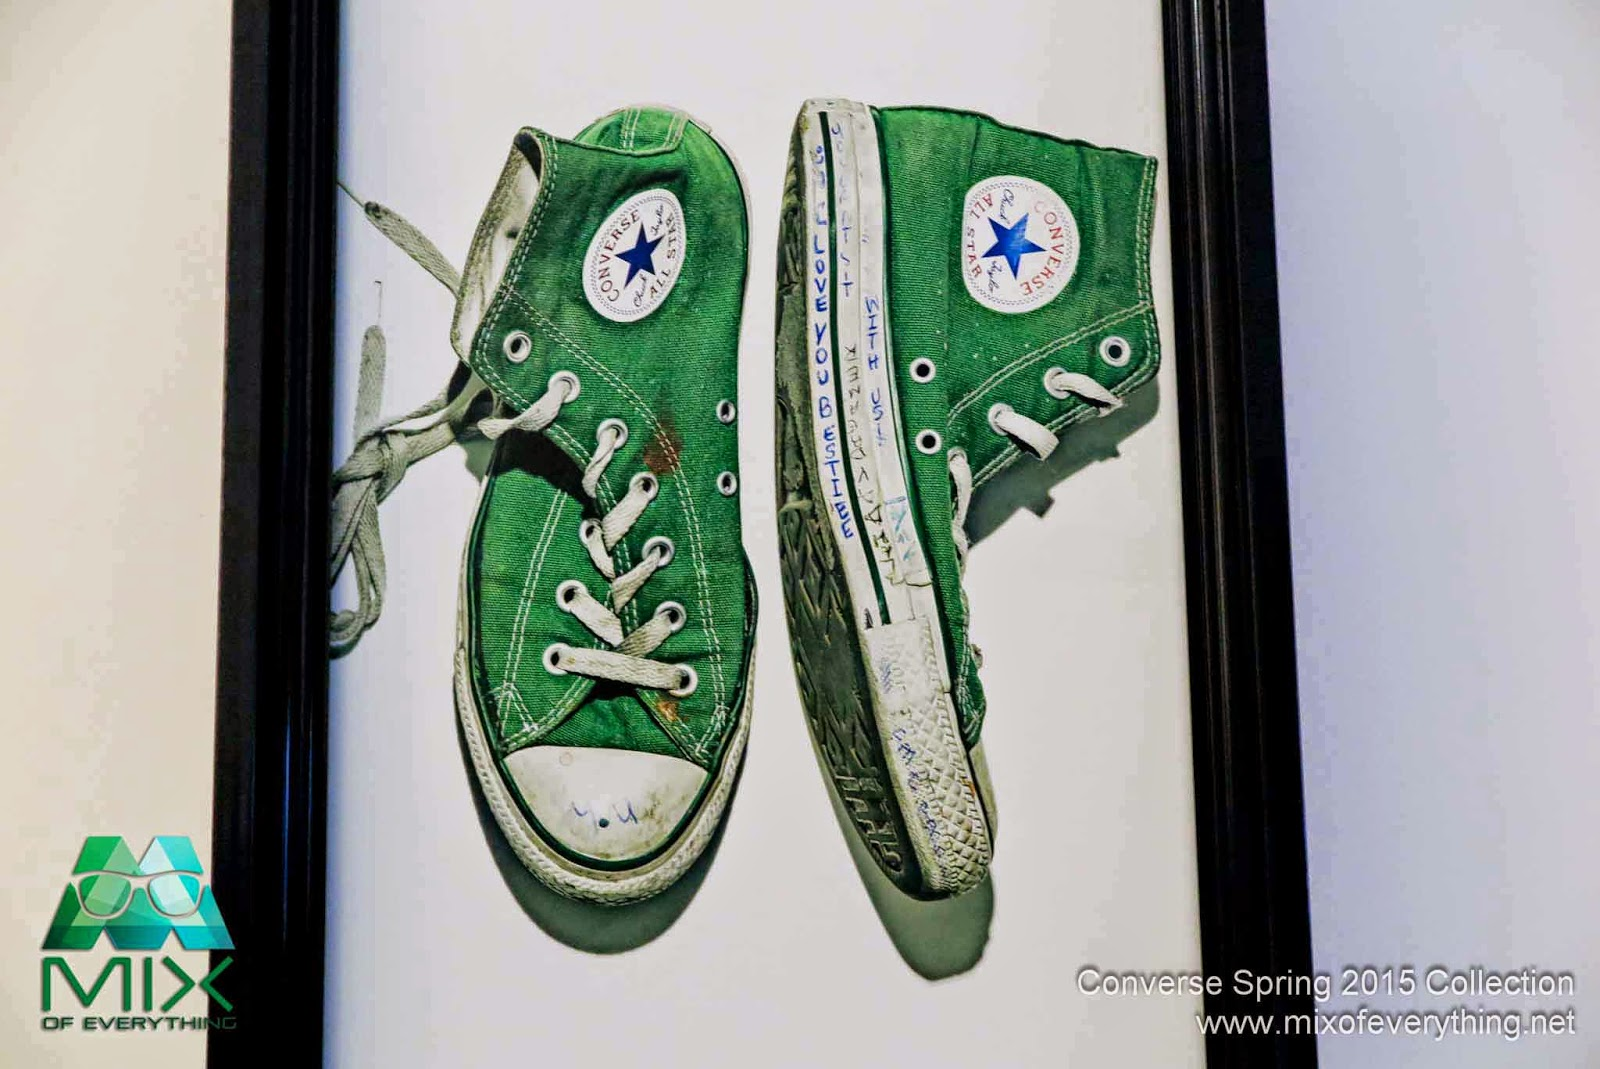 daa3b71eea40 Converse All Star X Andy Warhol and other Collaborations! - Hello ...